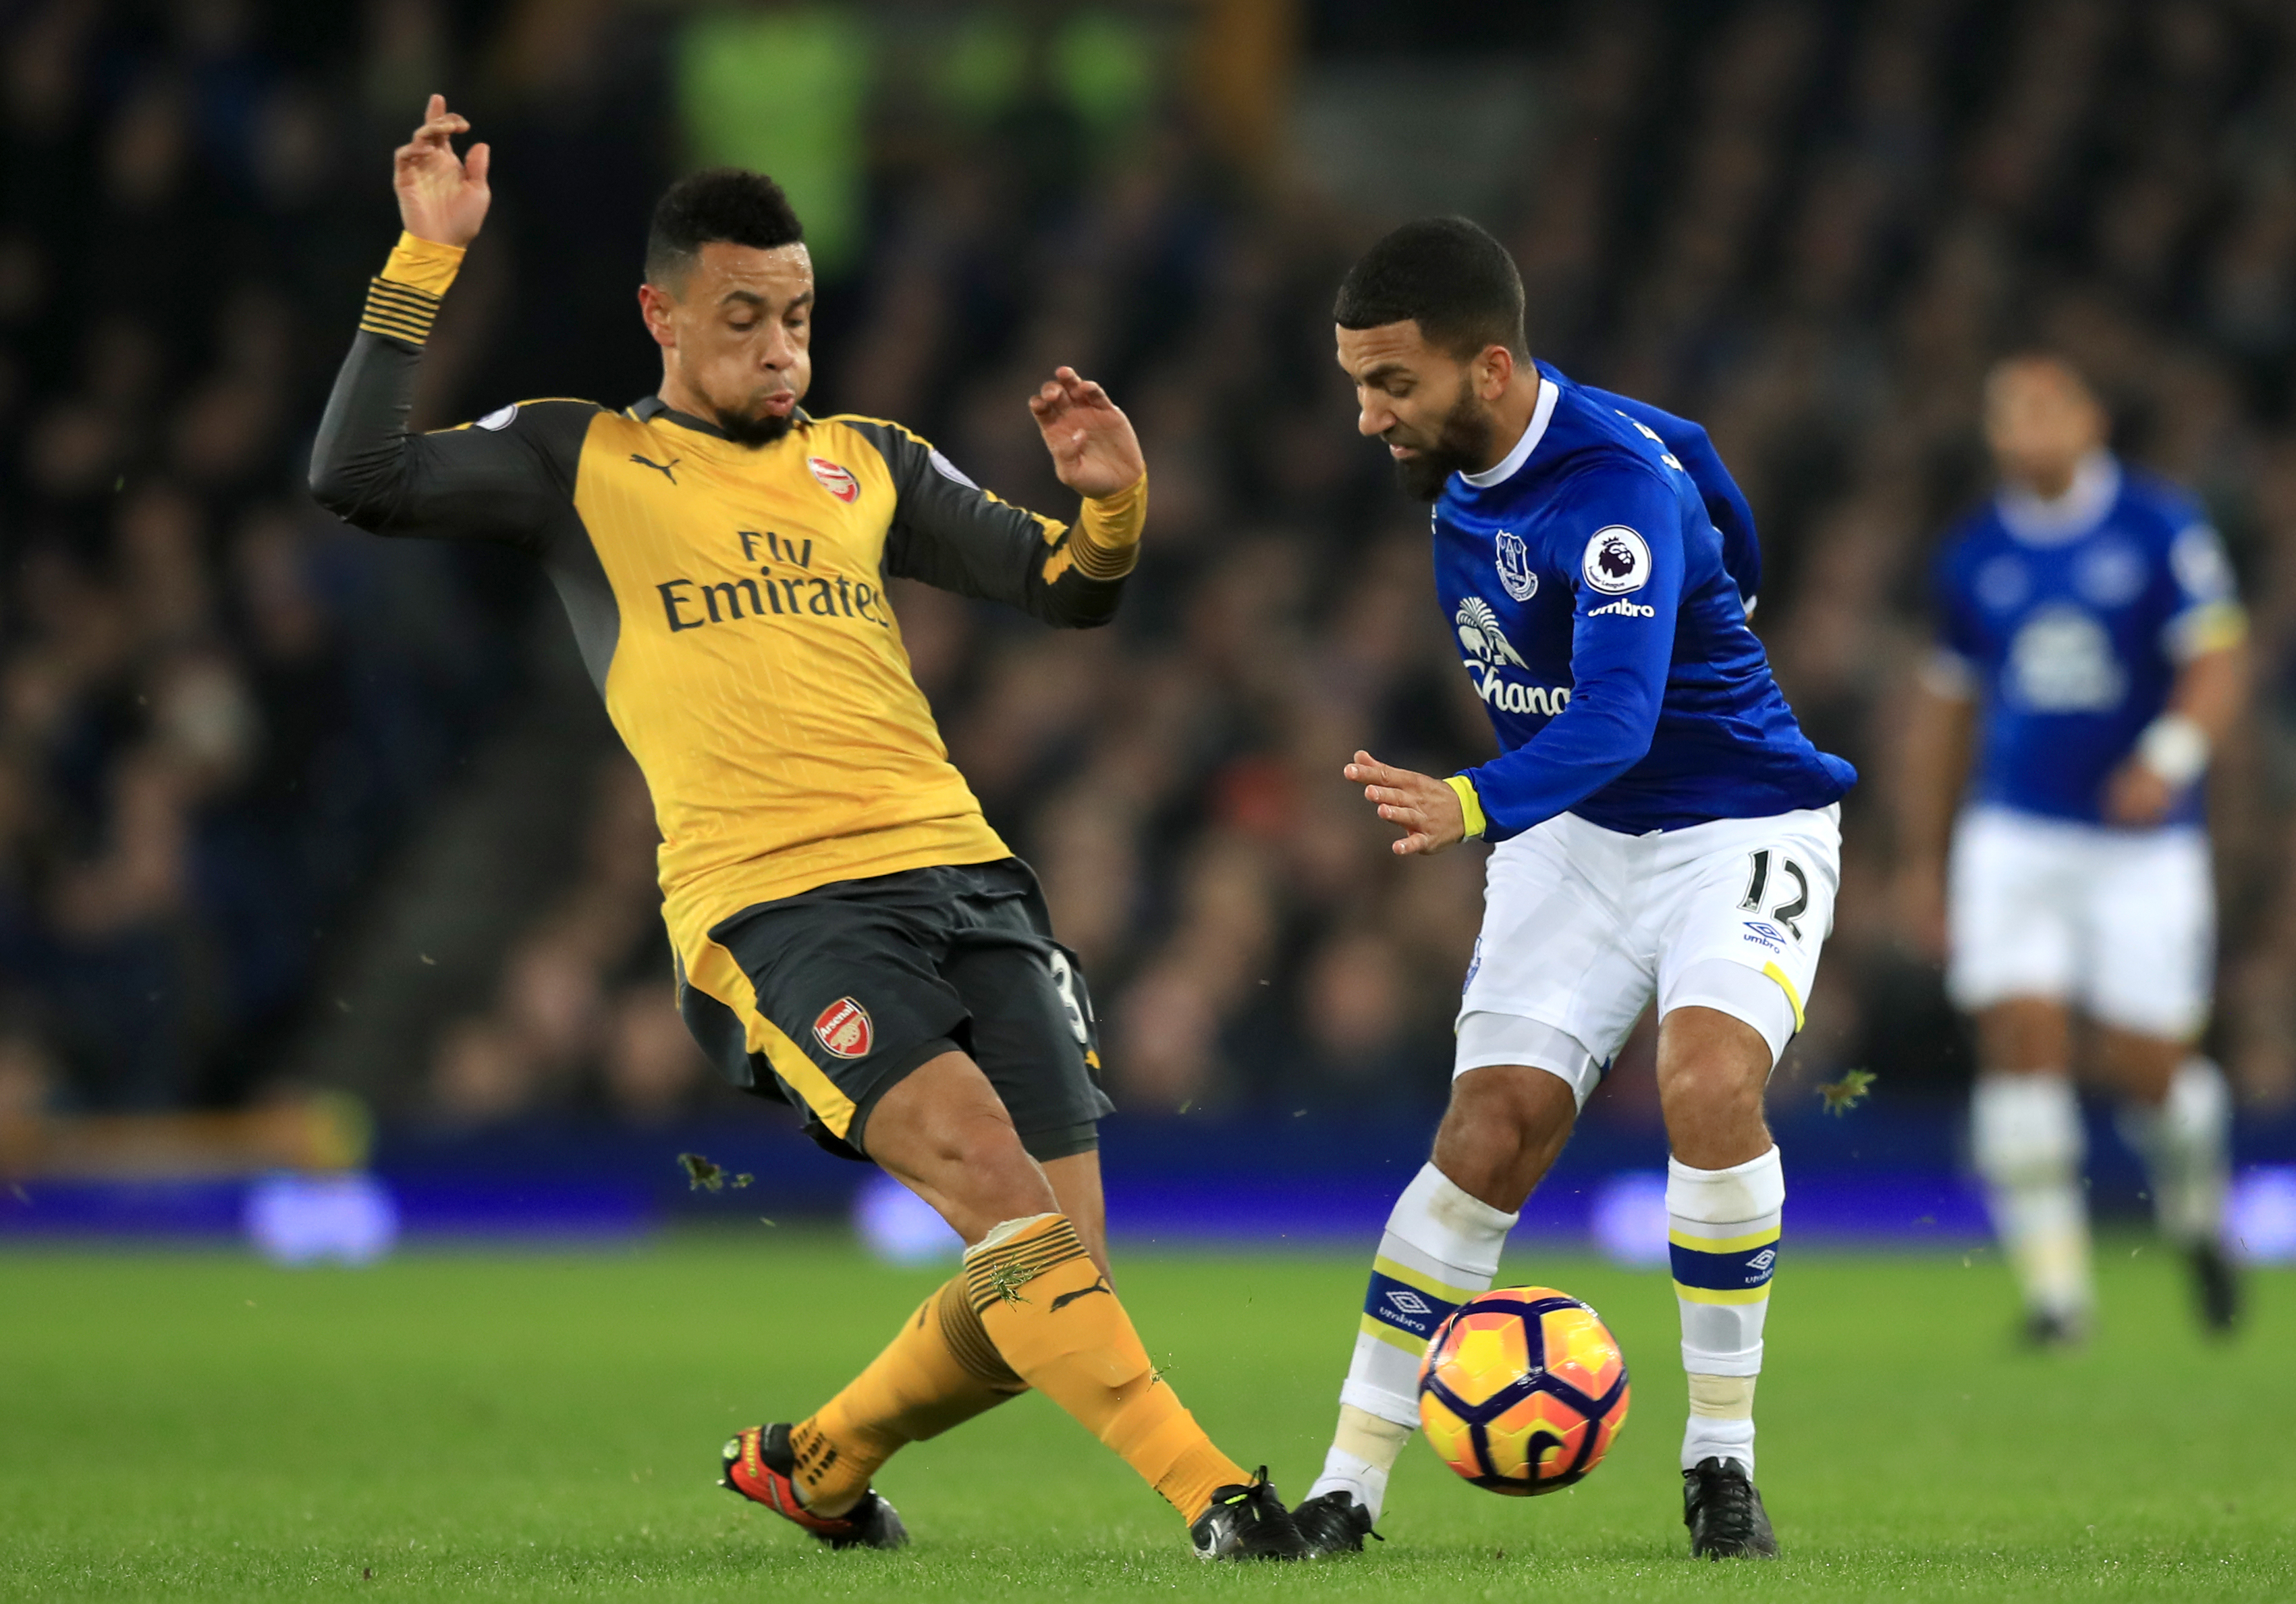 Arsenal's Francis Coquelin and Everton's Aaron Lennon